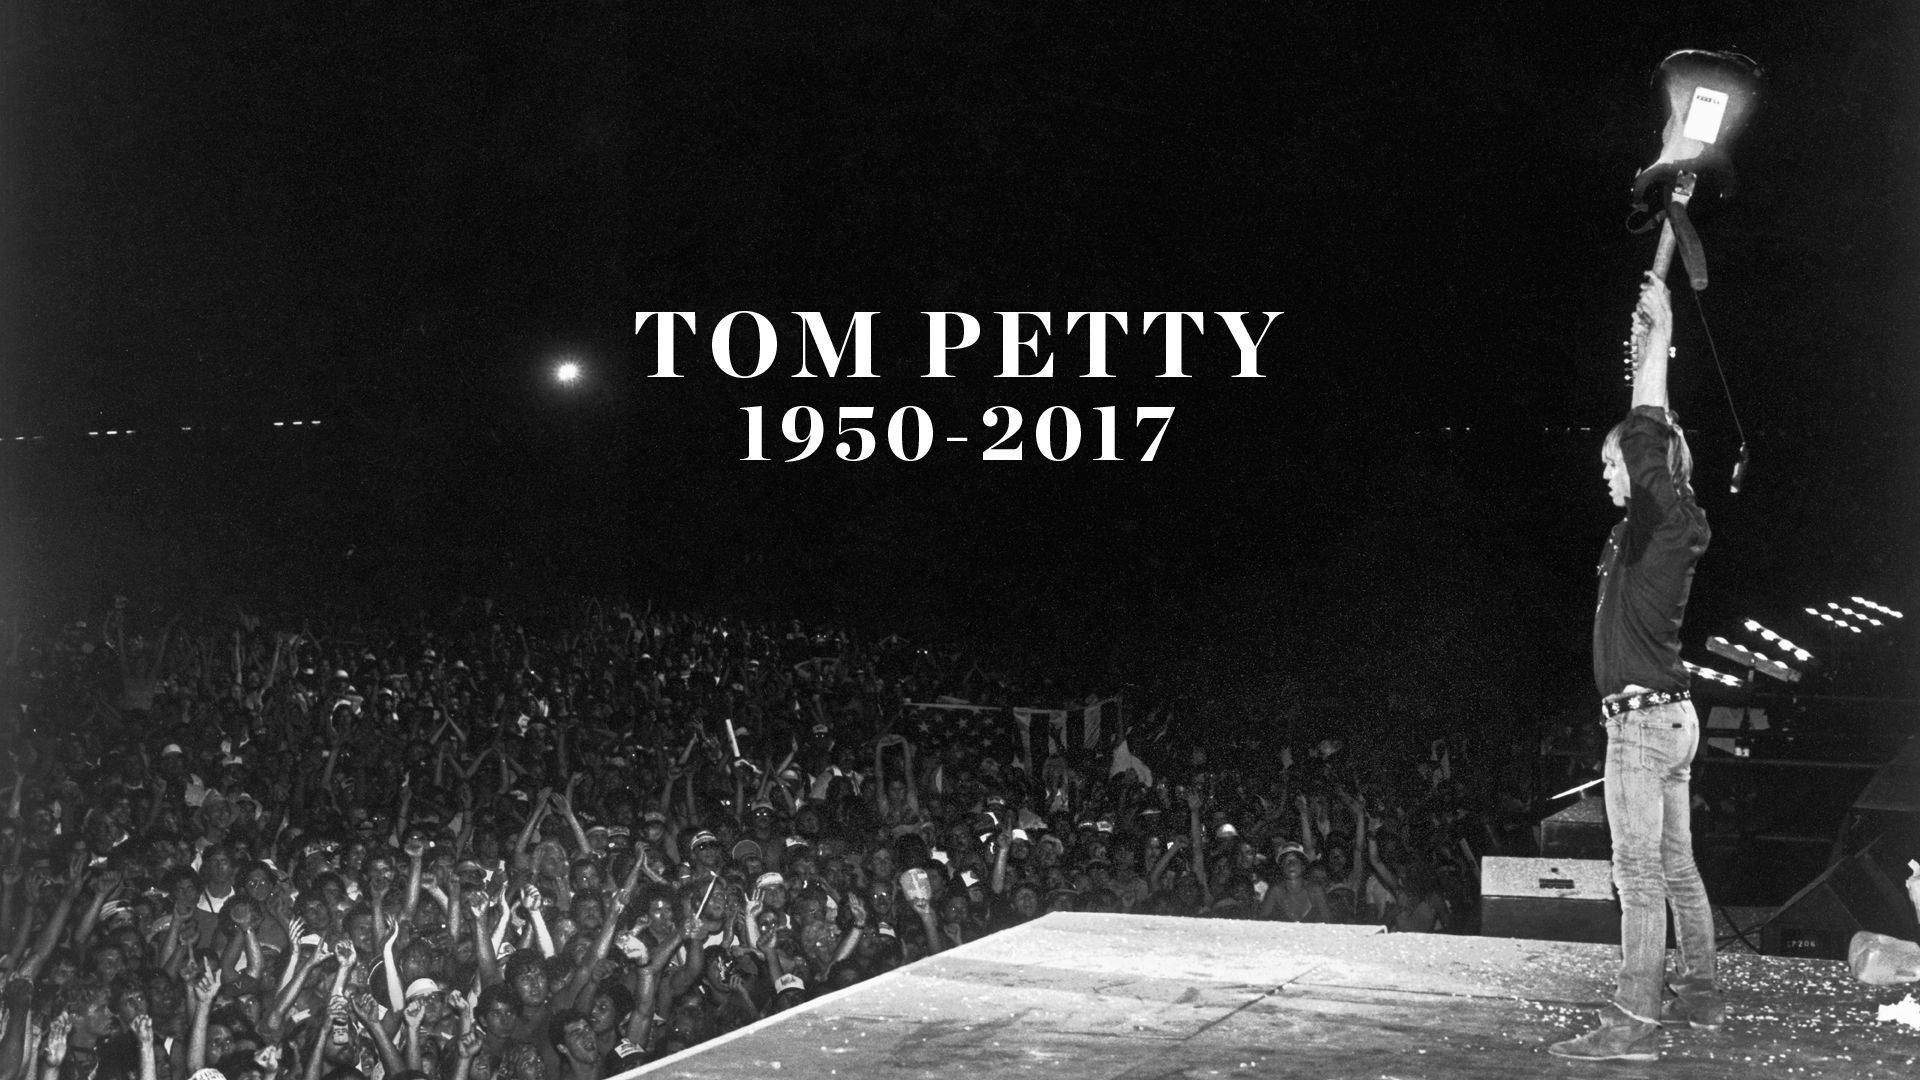 Tom Petty Iphone Wallpapers Top Free Tom Petty Iphone